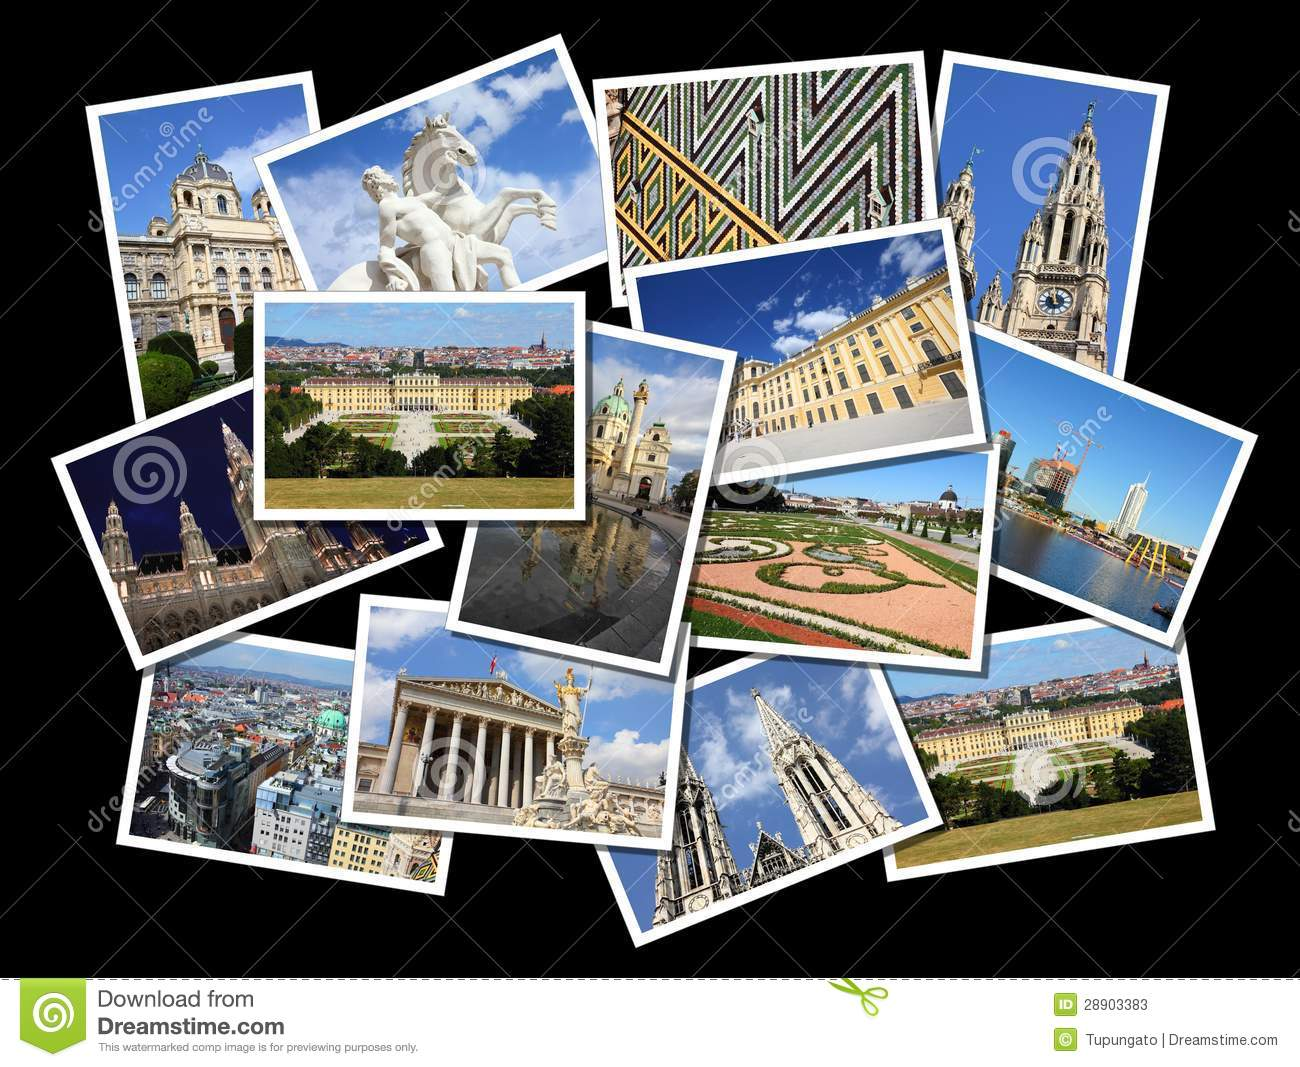 wien collage stockfotos bild 28903383. Black Bedroom Furniture Sets. Home Design Ideas